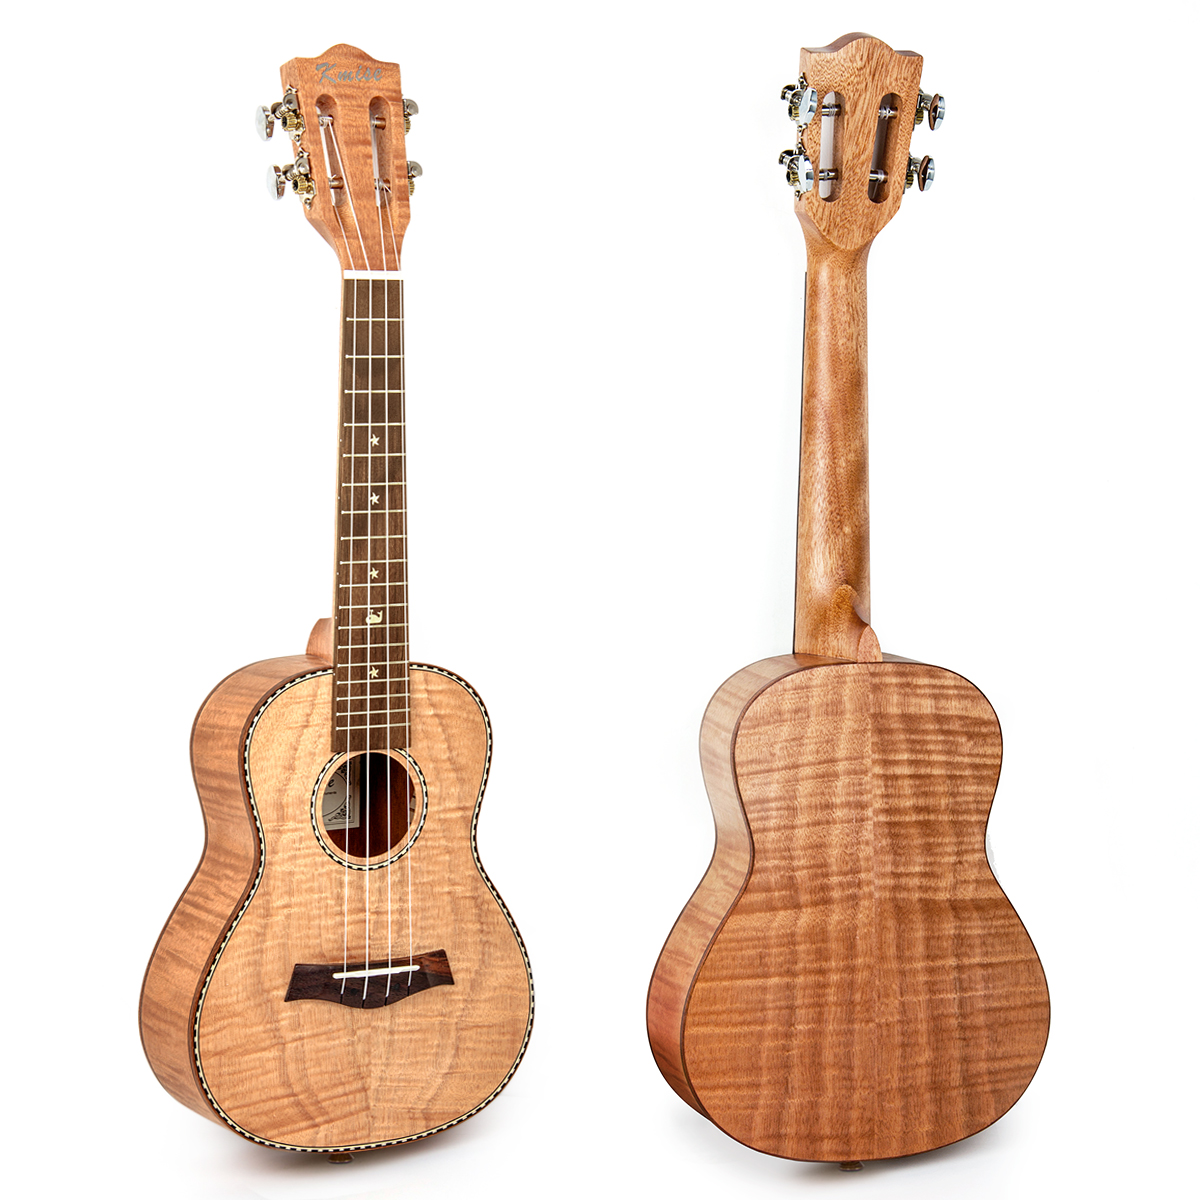 Kmise Concert Ukulele Tiger Flame Okoume 23 inch Classical Guitar Head 18 Frets Aquila String G-C-E-A Bone Nut & Saddle